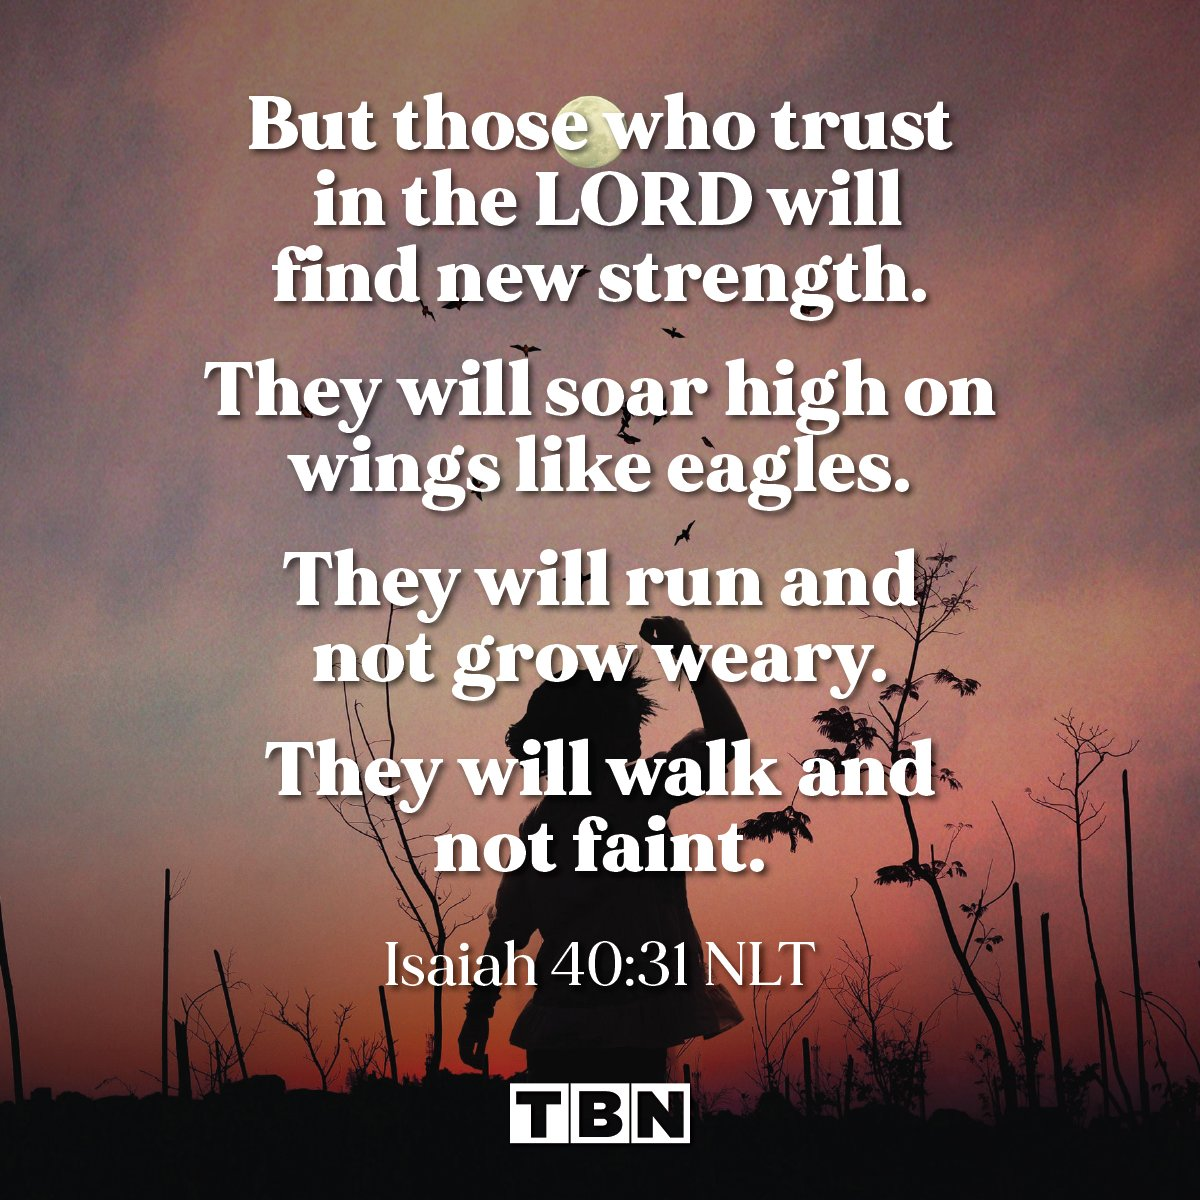 But those who trust in the LORD will find new strength. They will soar high on wings like eagles. They will run and not grow weary. They will walk and not faint. - Isaiah 40:31 (NLT)  #verseoftheday #votd https://t.co/mEMRPTq8tg